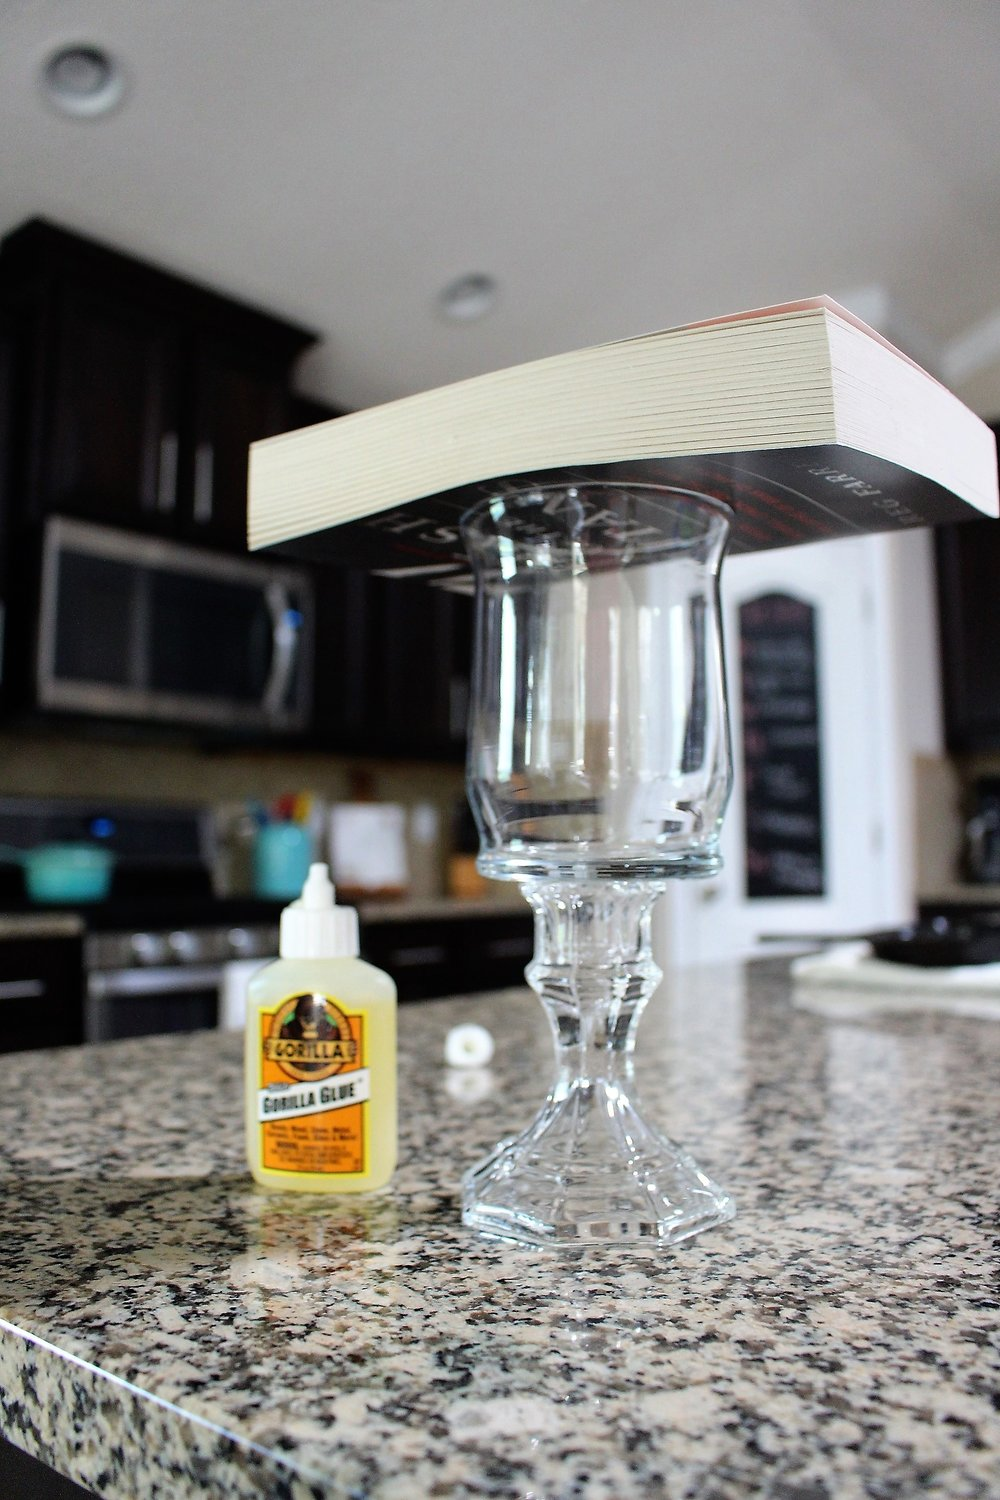 Place something heavy on top and let sit for about 15 minutes while glue dries.